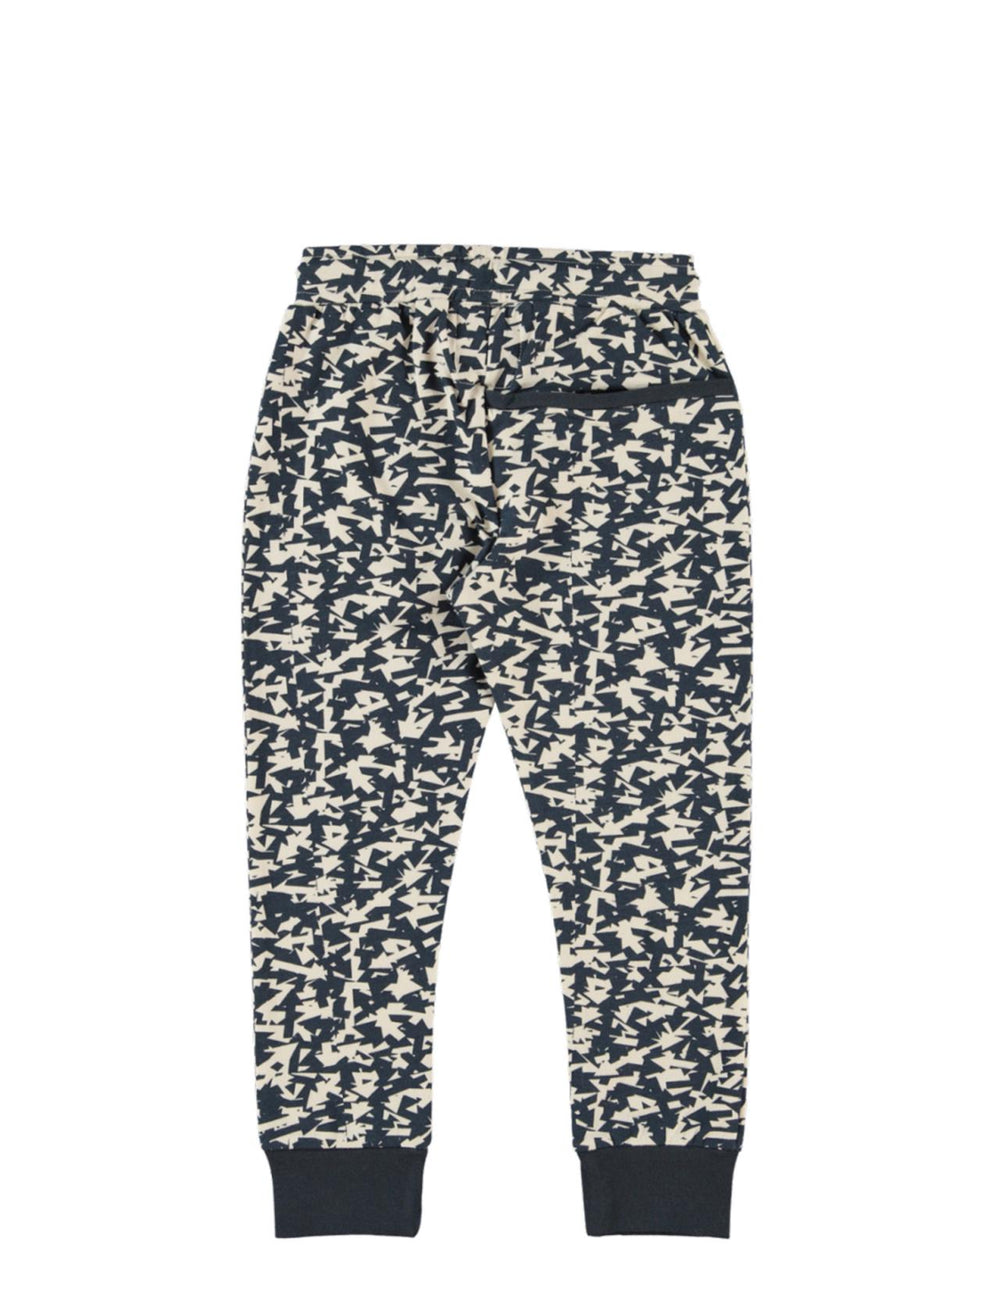 Kidscase - Alf Organic Sweat Pants